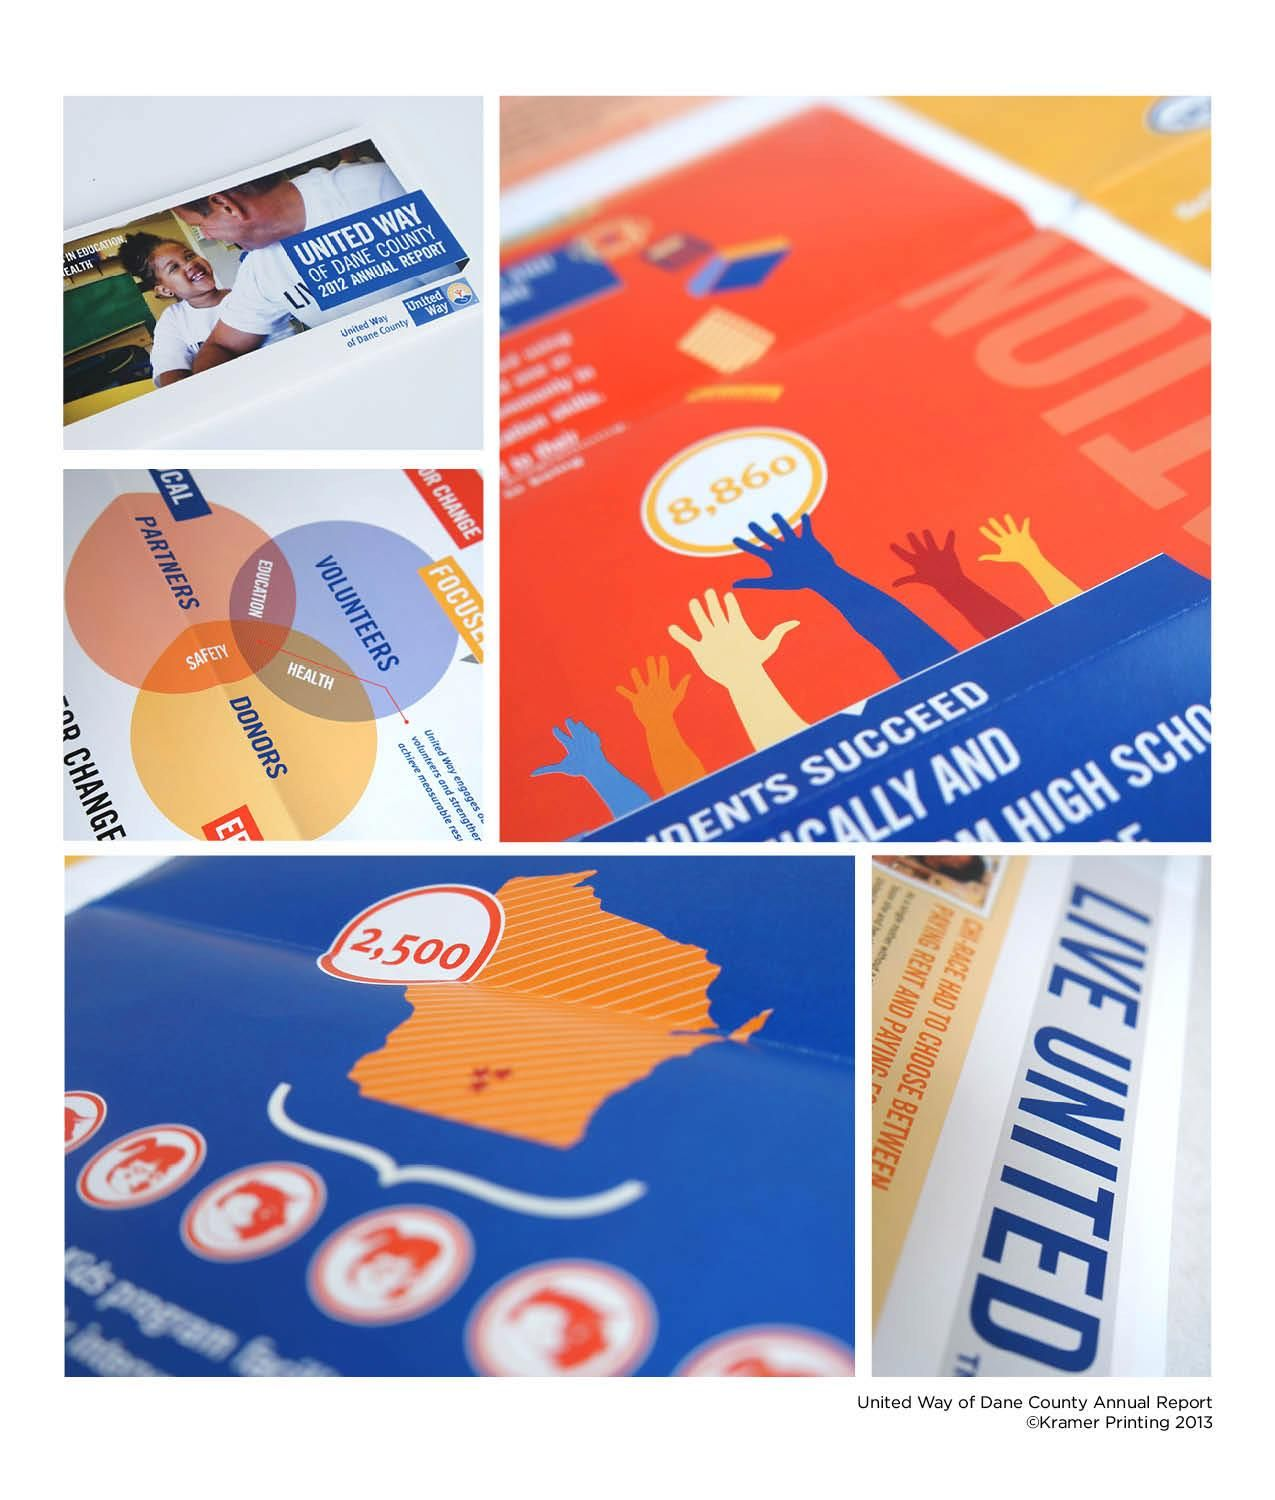 United Way Of Dane County Annual Report Mailer Design By Kramer Kramerprinting